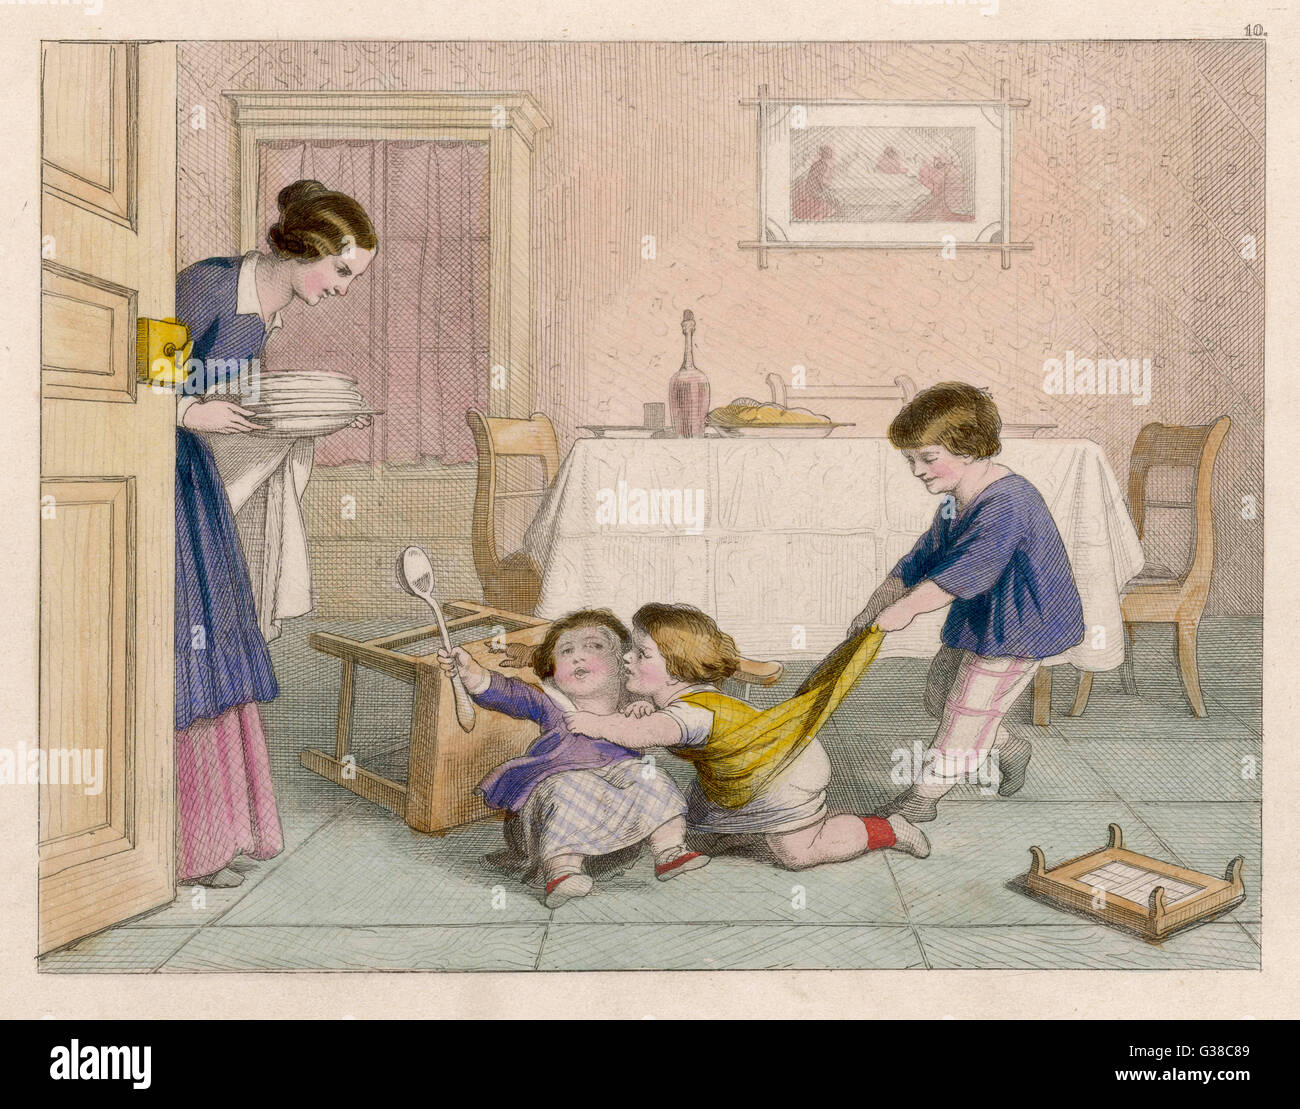 Mama finds the children  quarreling         Date: 1852 - Stock Image